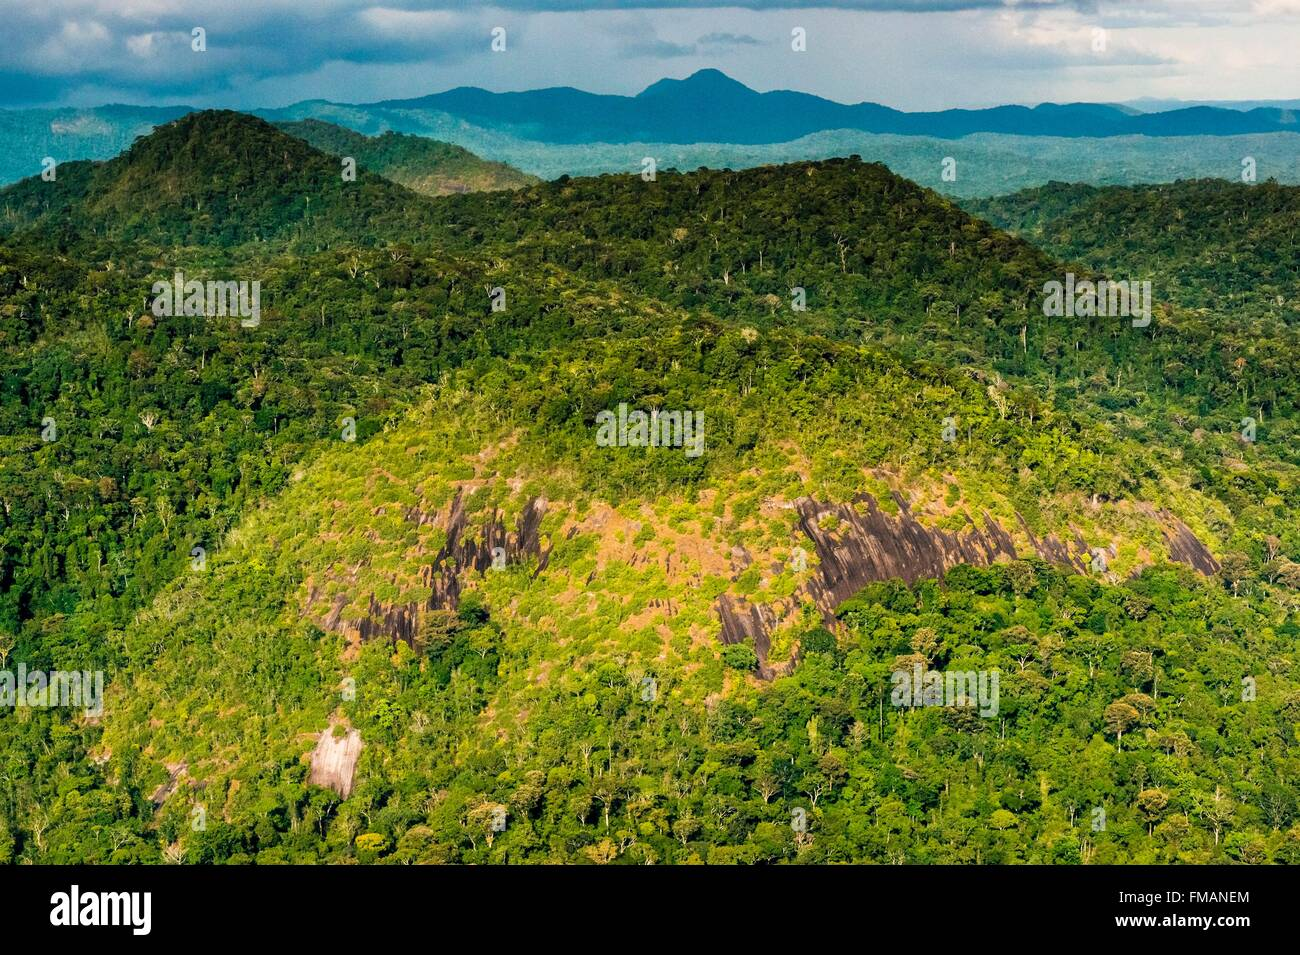 France, Guyana, French Guyana Amazonian Park, heart area, inselberg over Amazon rainforest - Stock Image